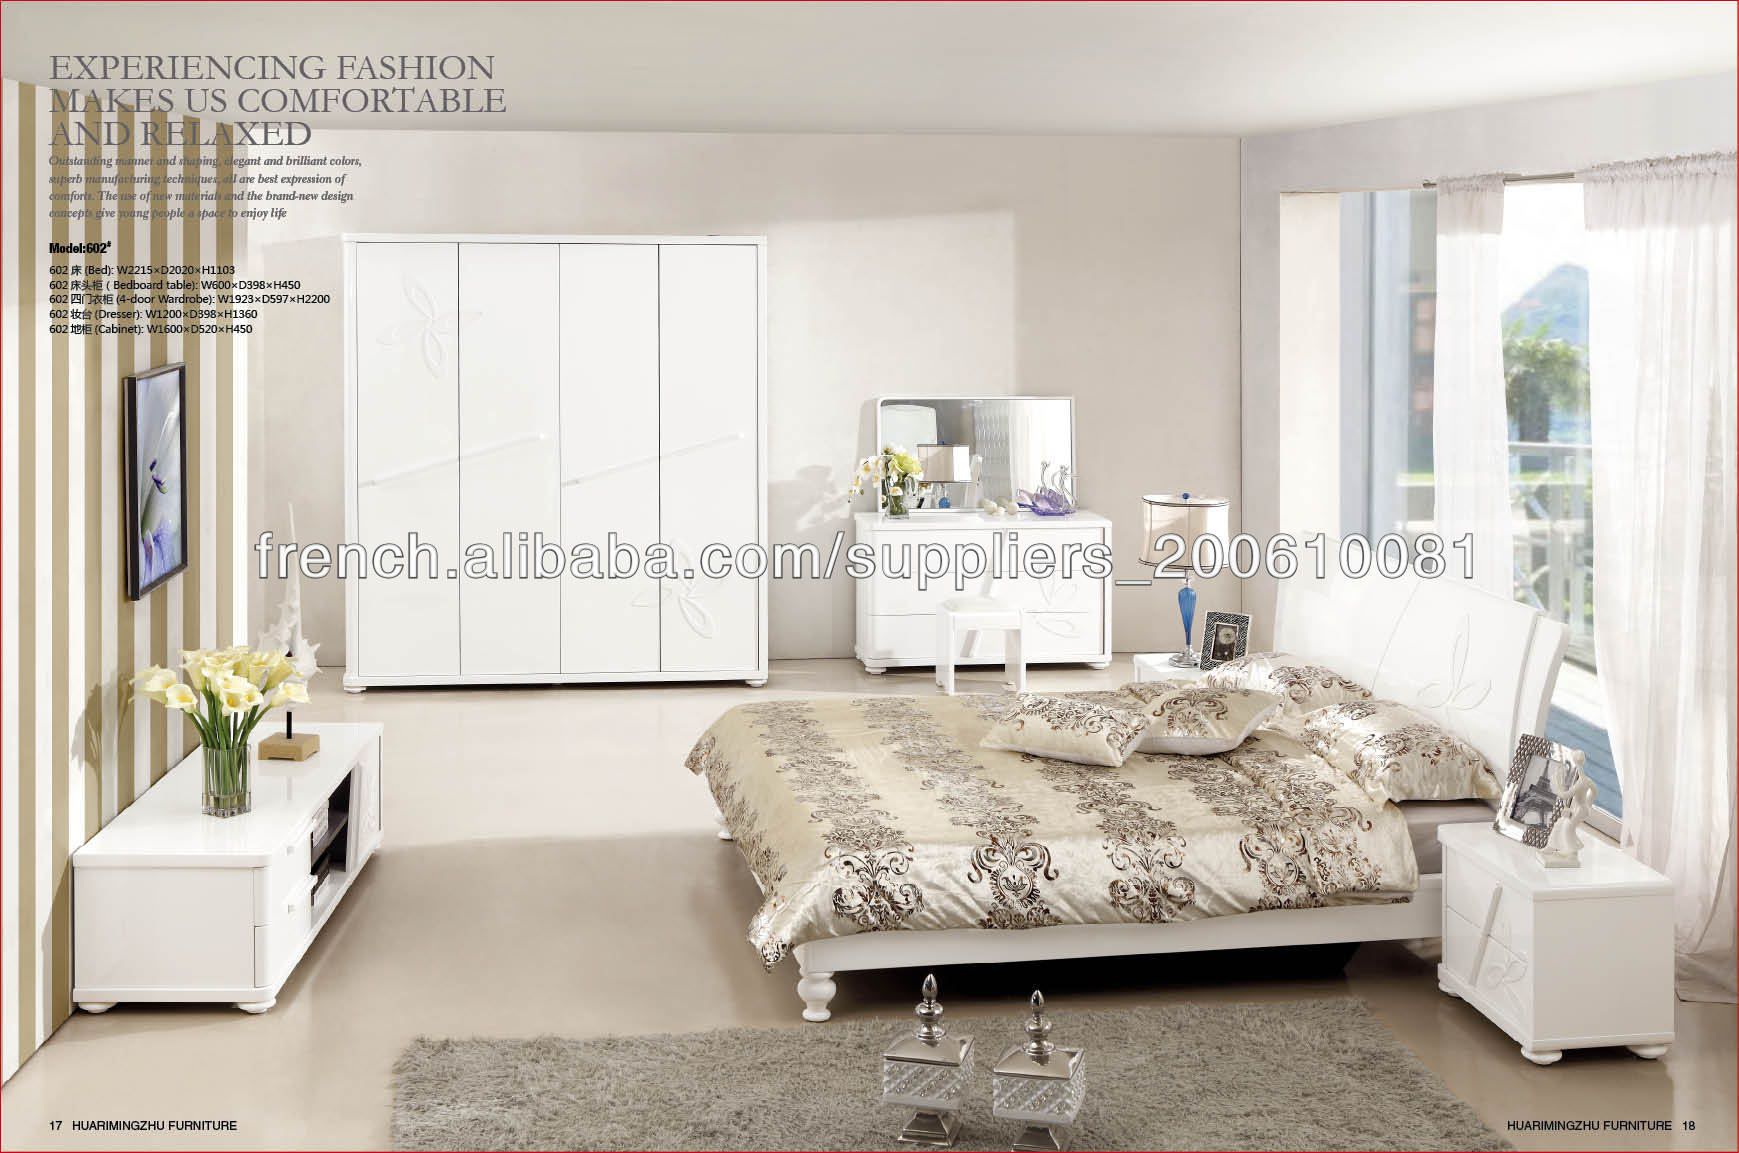 chambre coucher moderne blanc ensemble de meubles lots. Black Bedroom Furniture Sets. Home Design Ideas